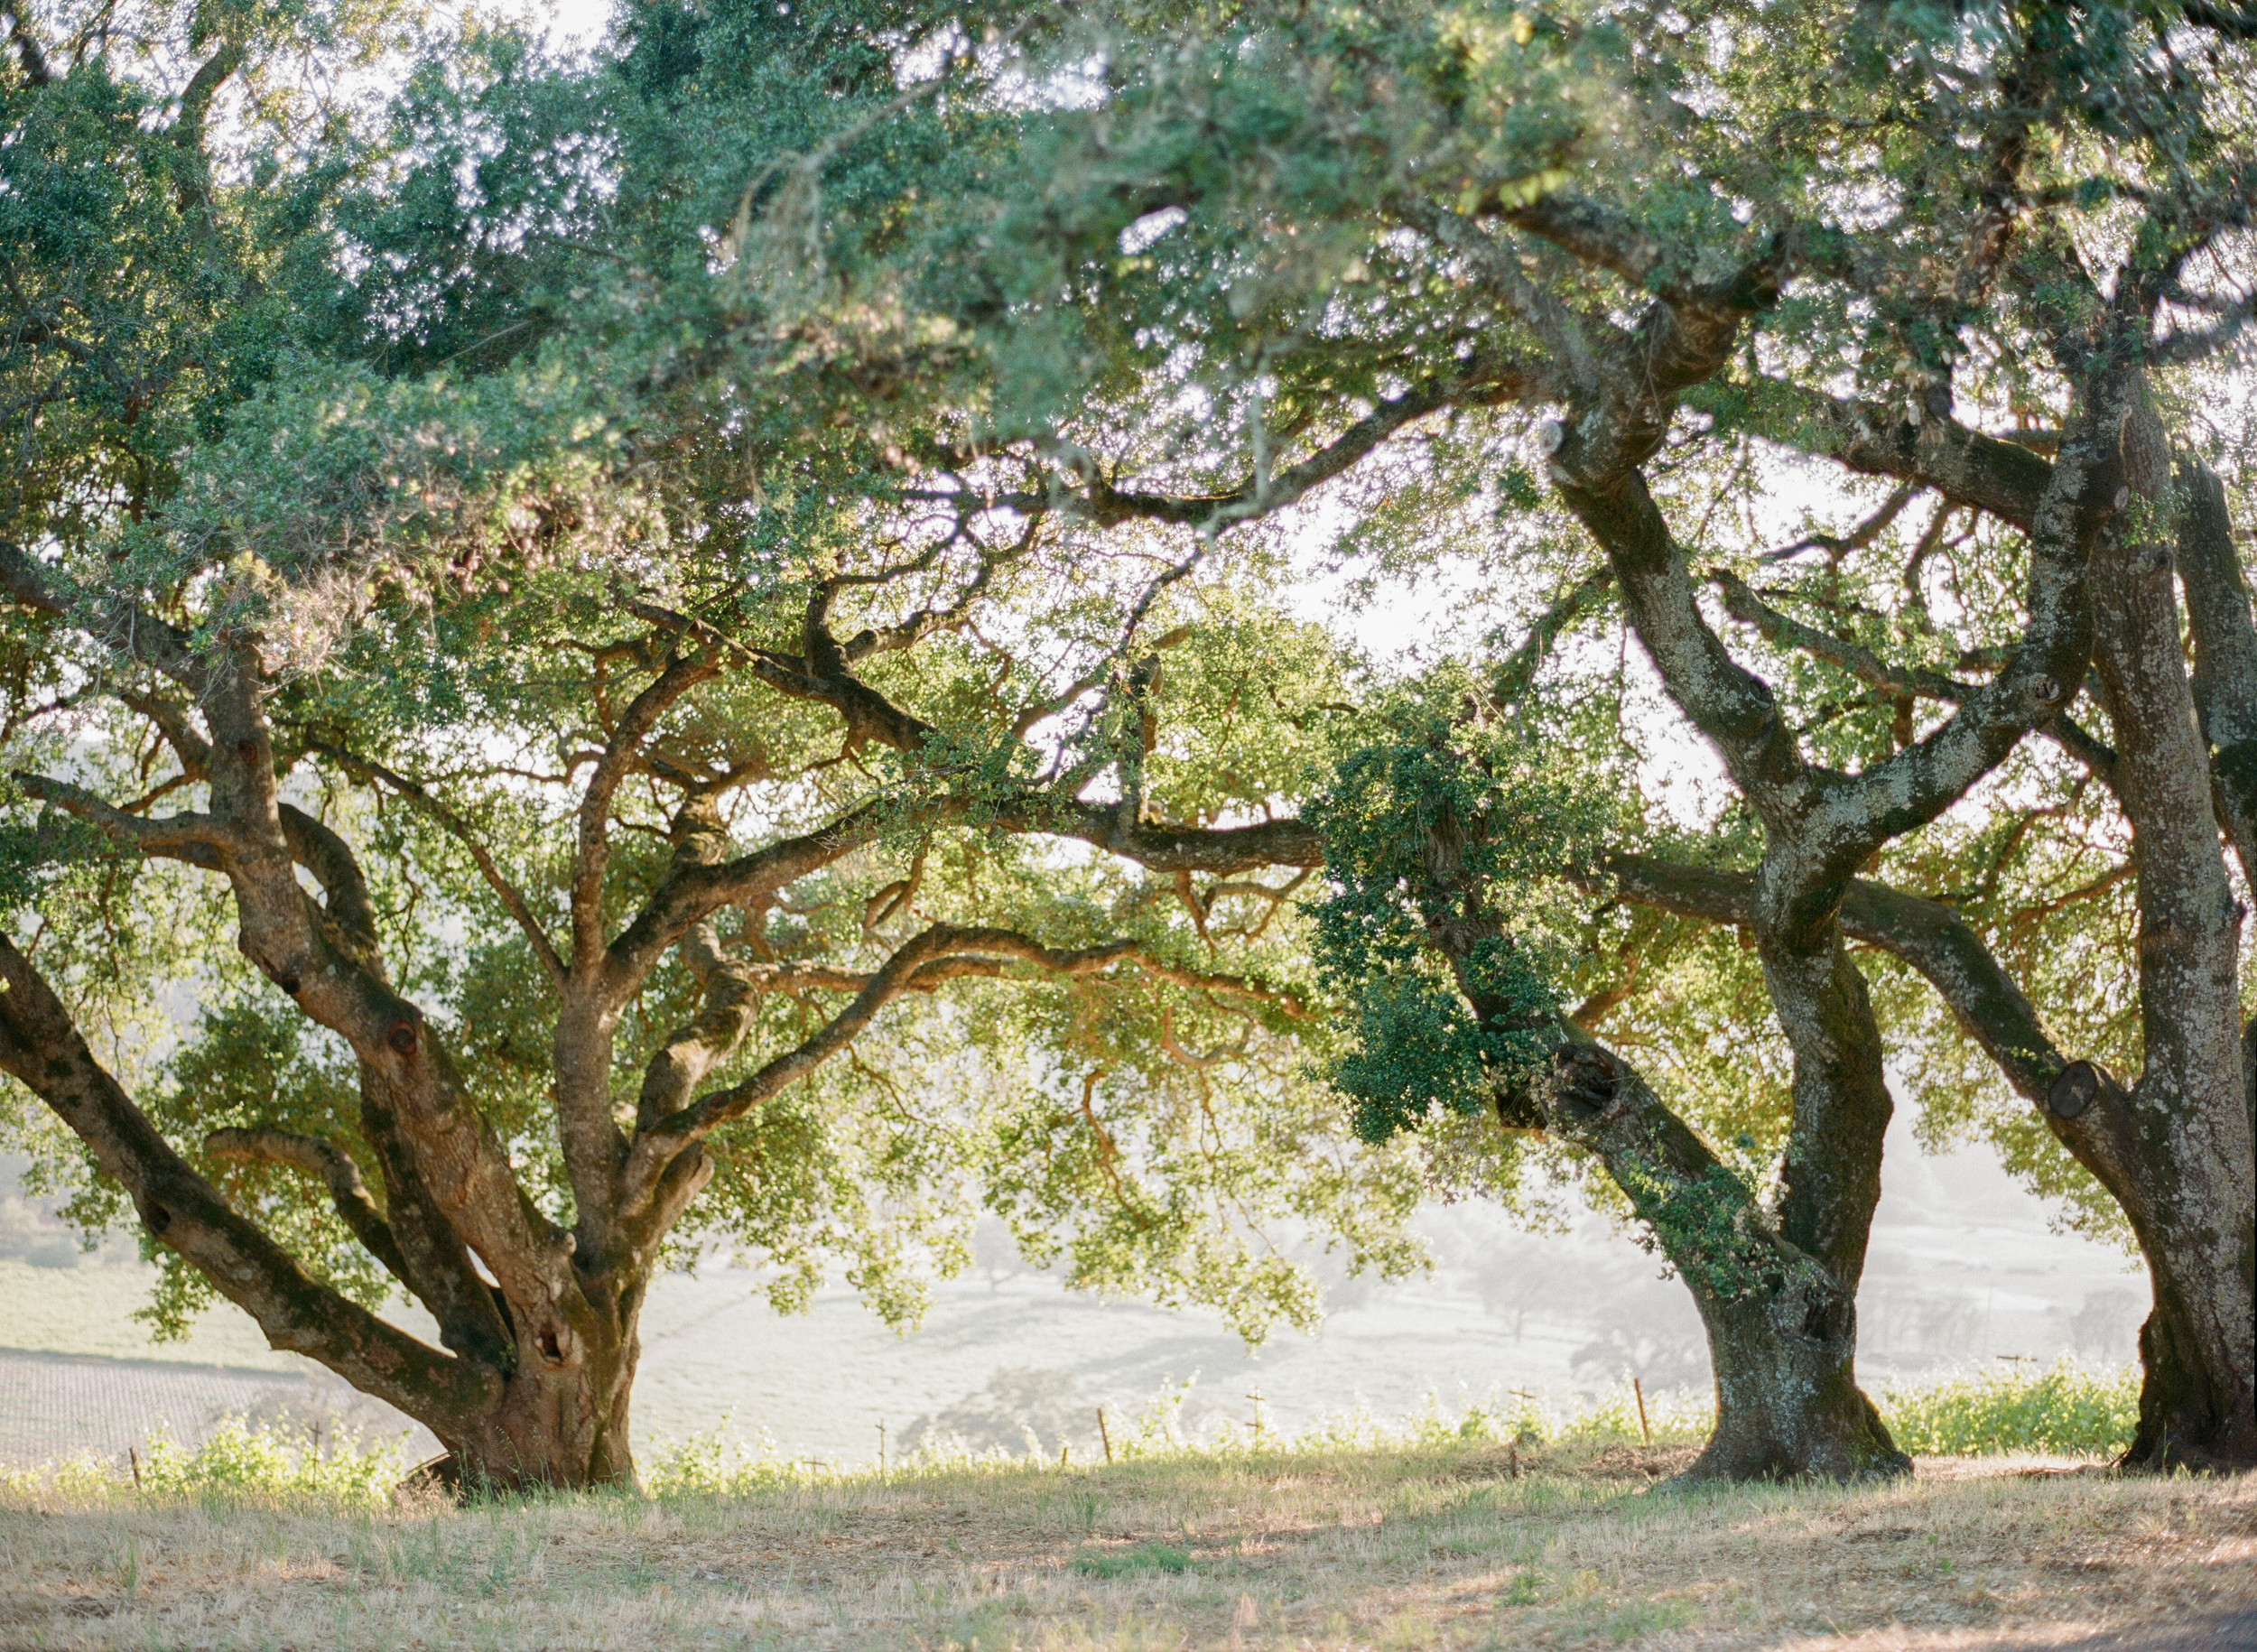 Sylvie-Gil-film-destination-photography-Kunde-winery-Napa-Valley-elegant-shabby-chic-vineyard-oak-trees